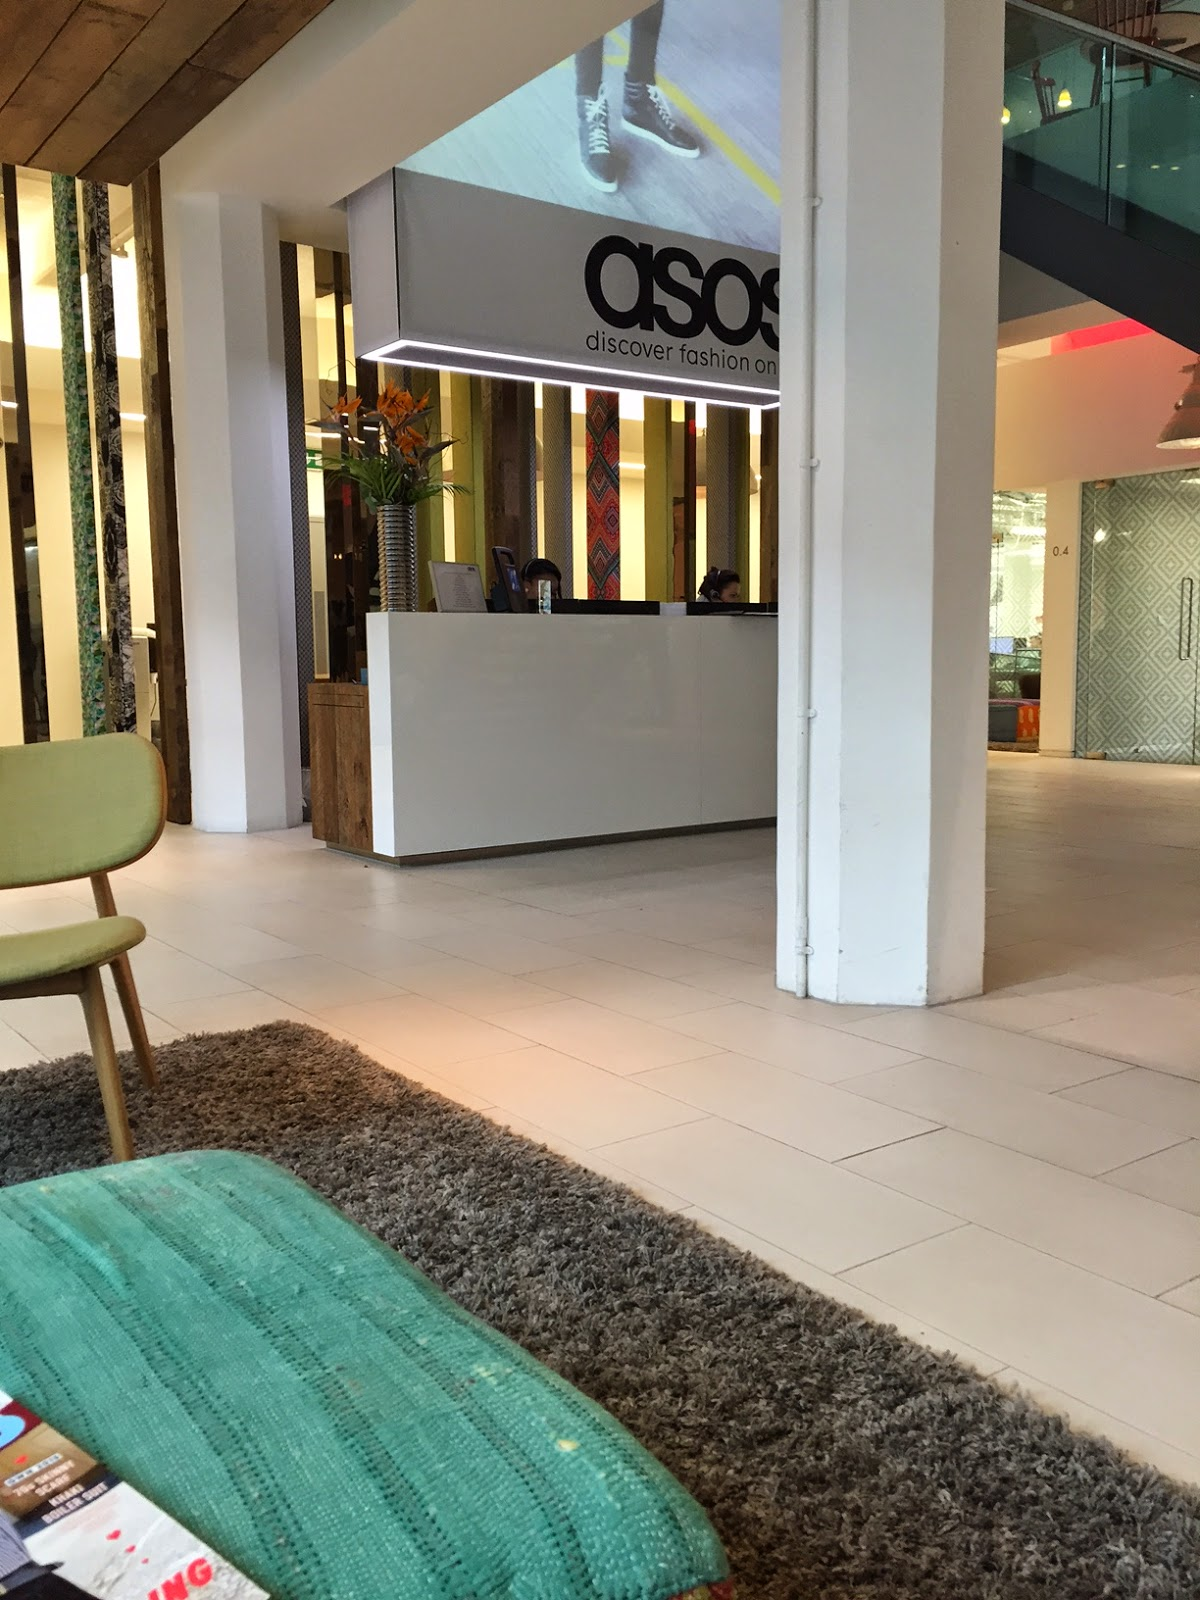 My Day At ASOS